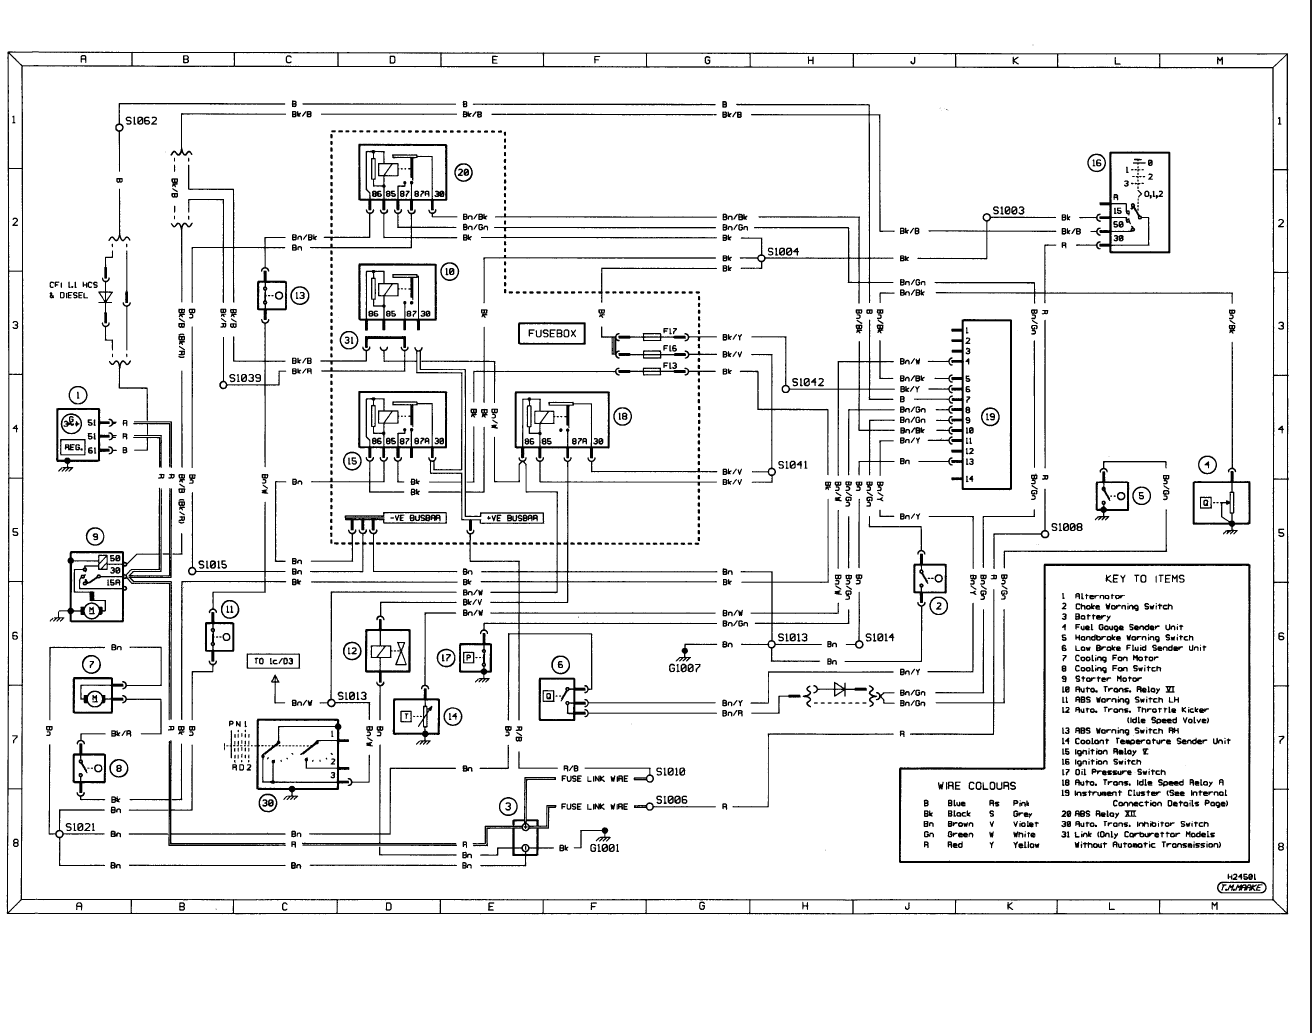 Oset Wiring Diagram Another Blog About 2810 Ford Tractor Model Quadzilla